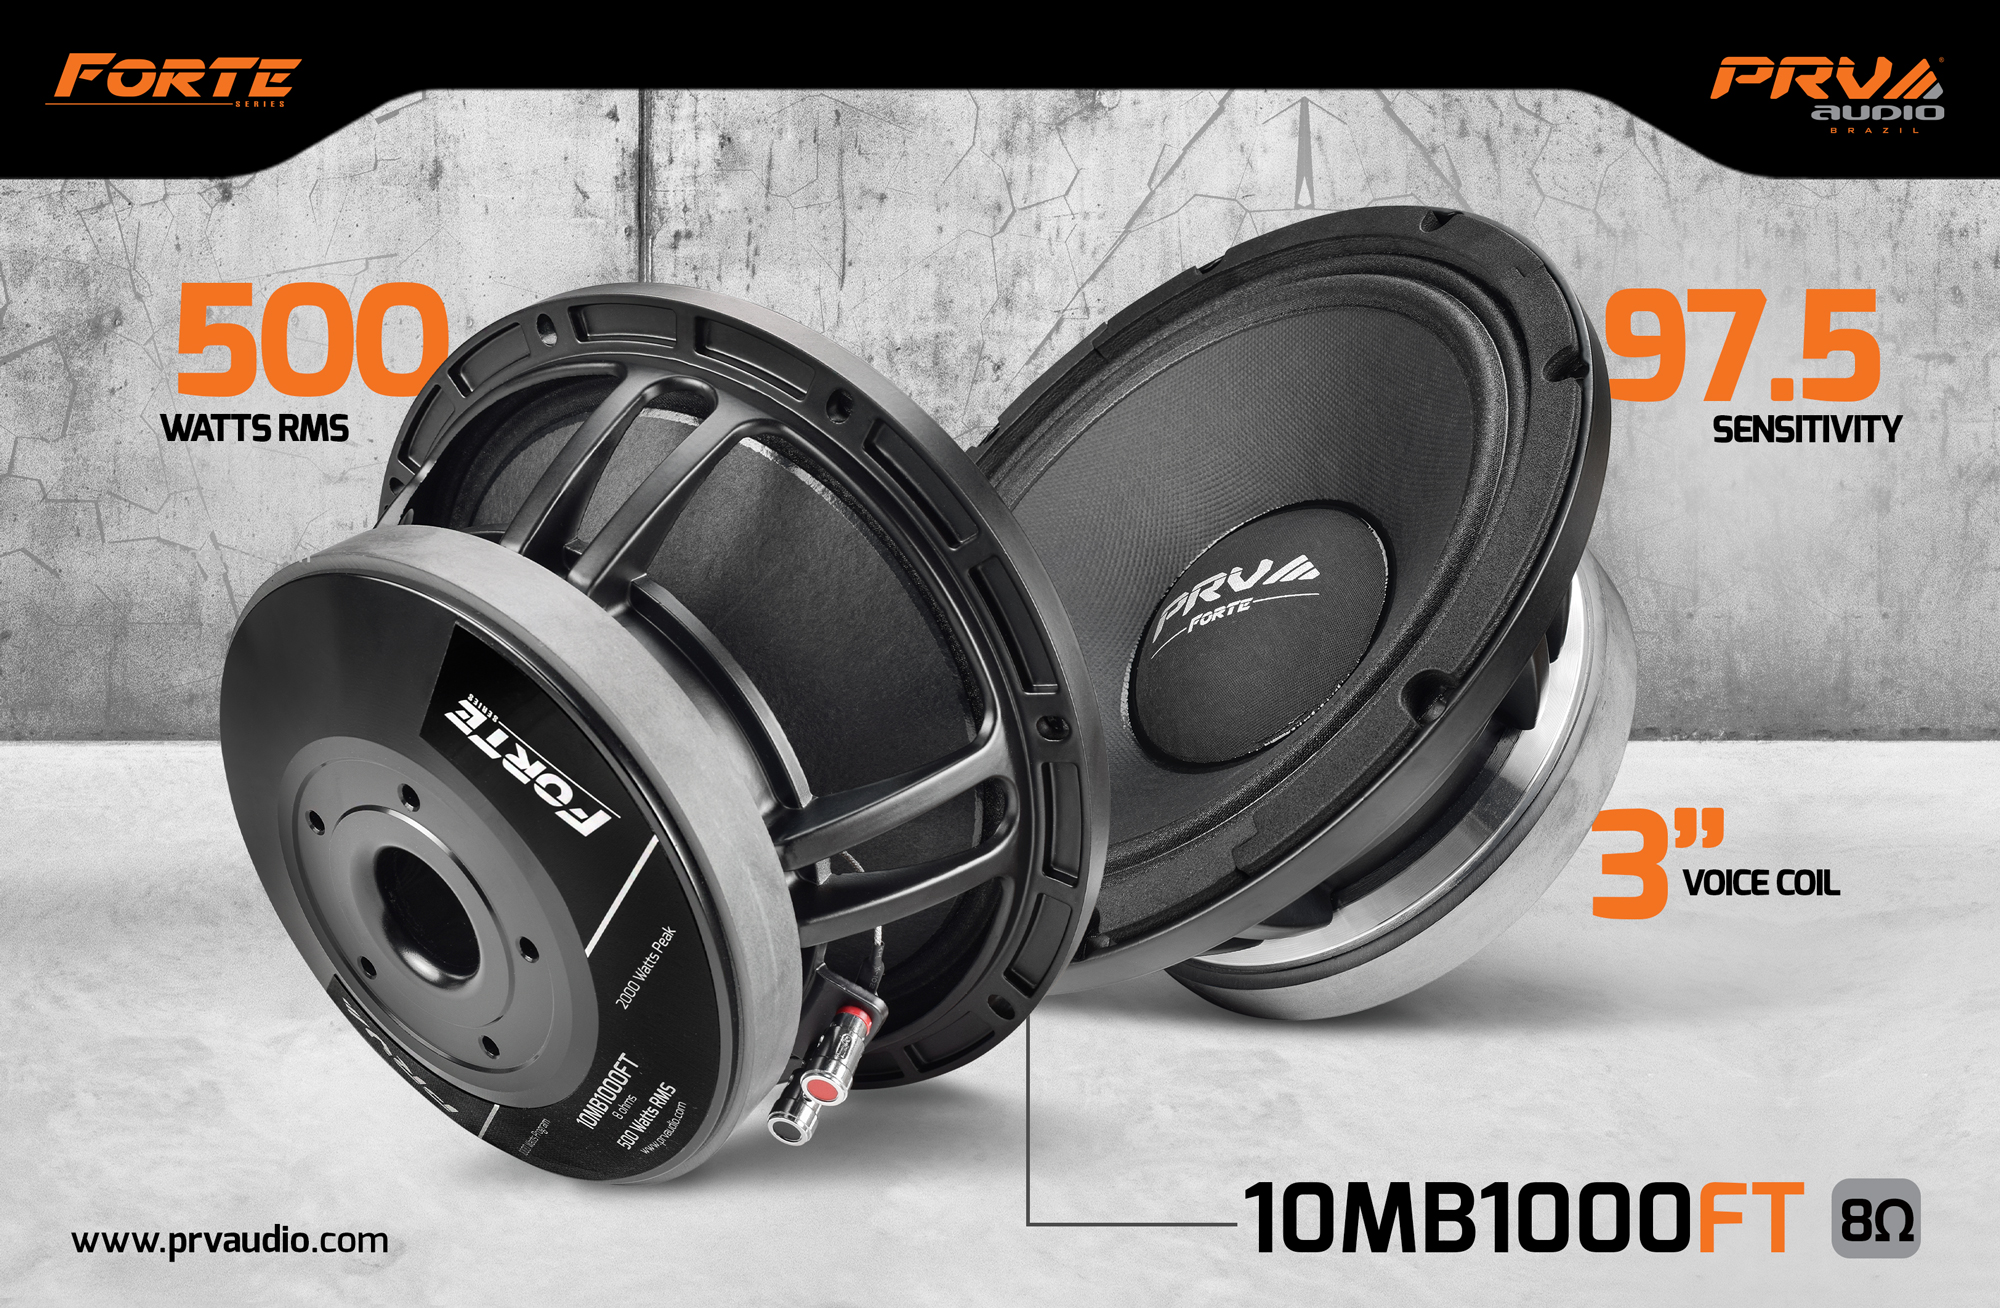 10MB1000FT---FB-Post---Product-Release